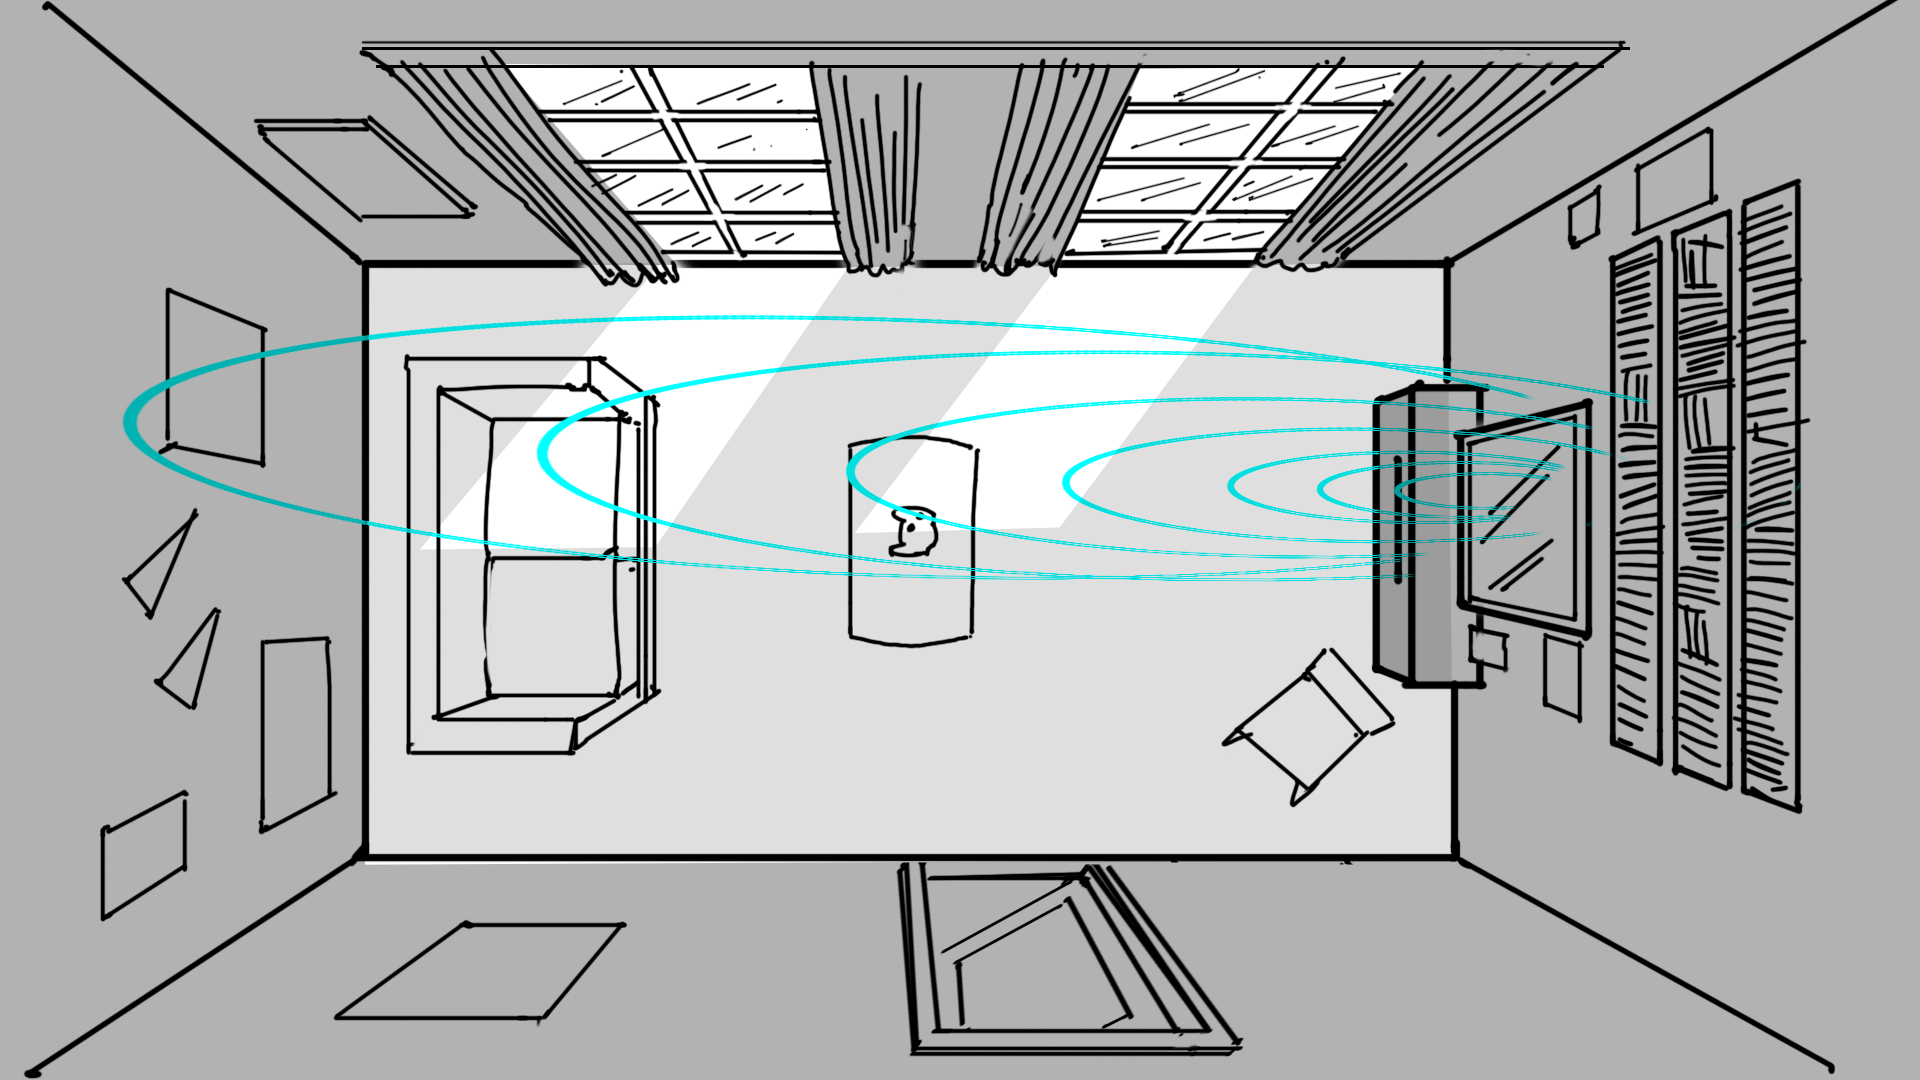 012_Fios_Orbi_game room overhead_ALT.png